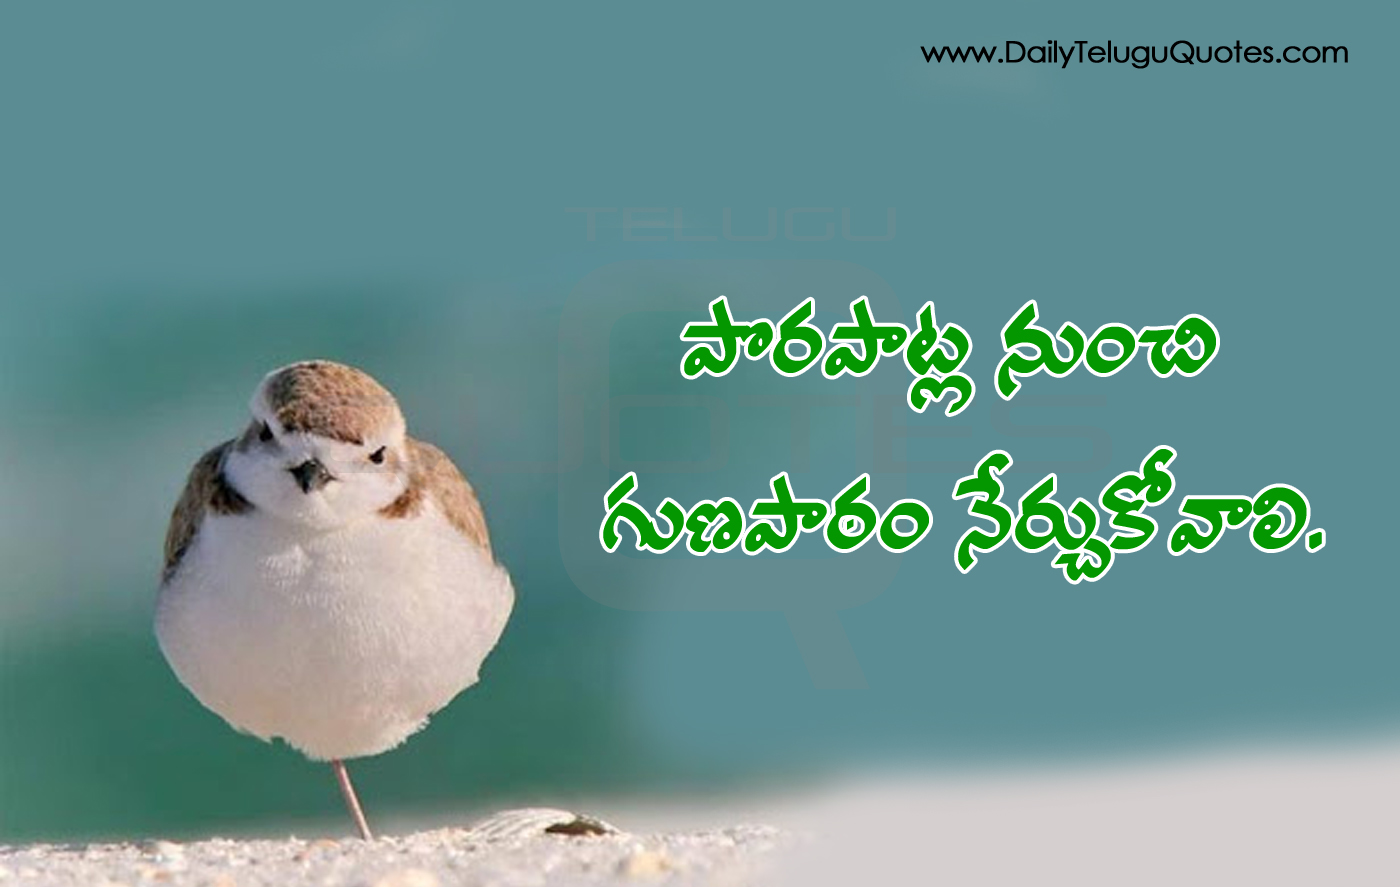 Inspirational Thoughts Best Motivational Thoughts And Quotes In Telugu About Life